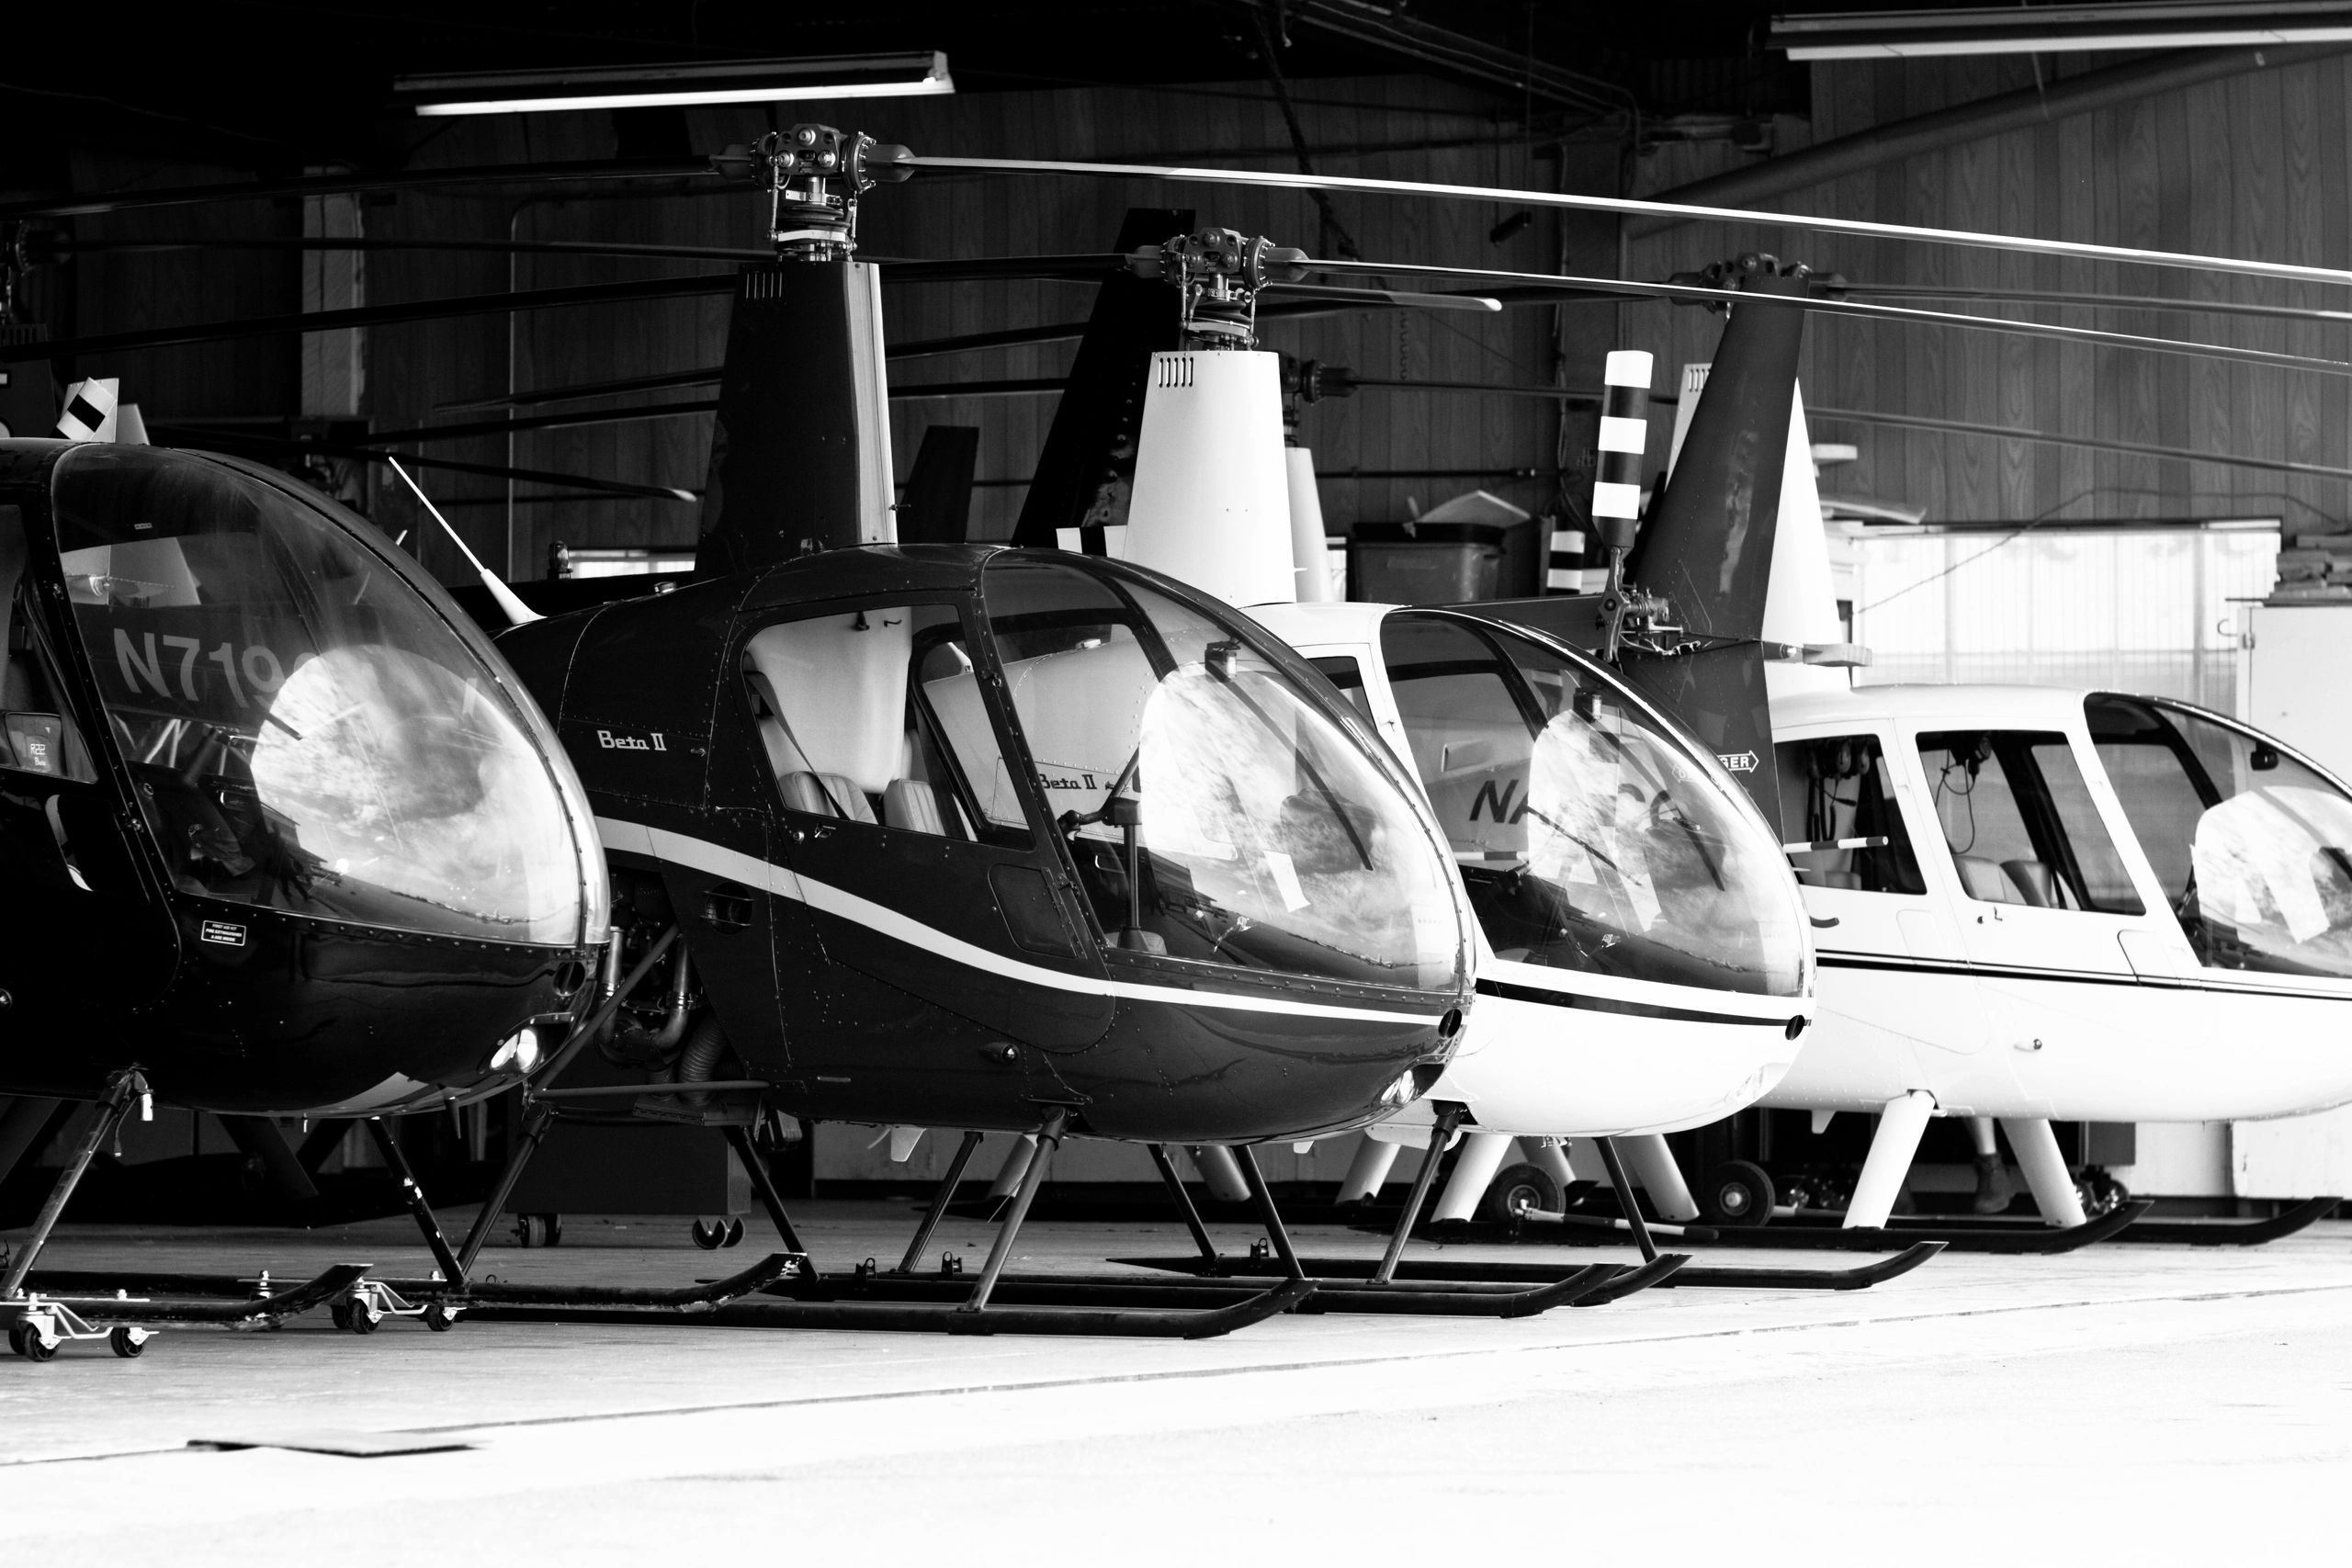 Light Helicopter Depot - Robinson Helicopter, Maintenance and Service